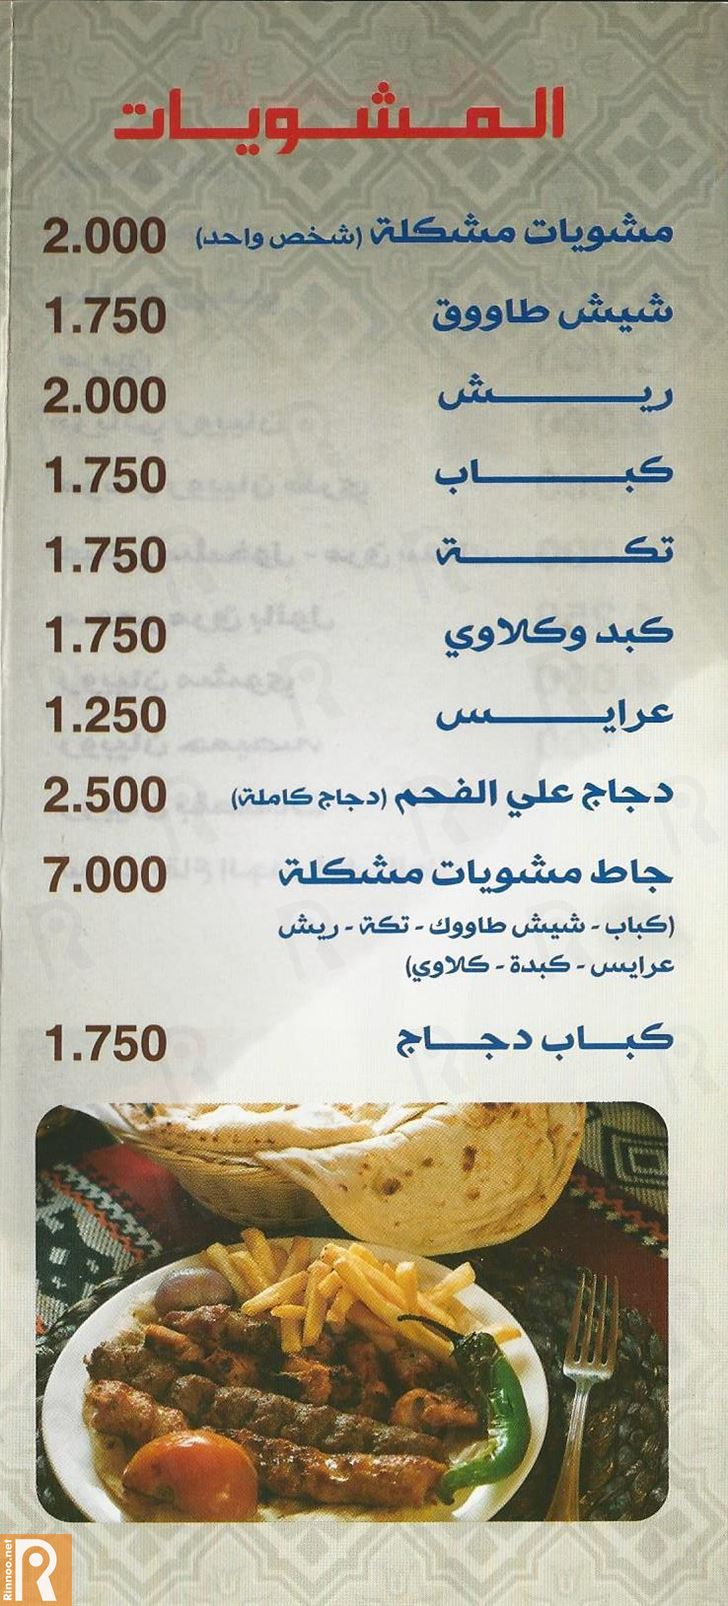 Alsteenat Kuwaiti Restaurant Delivery Menu